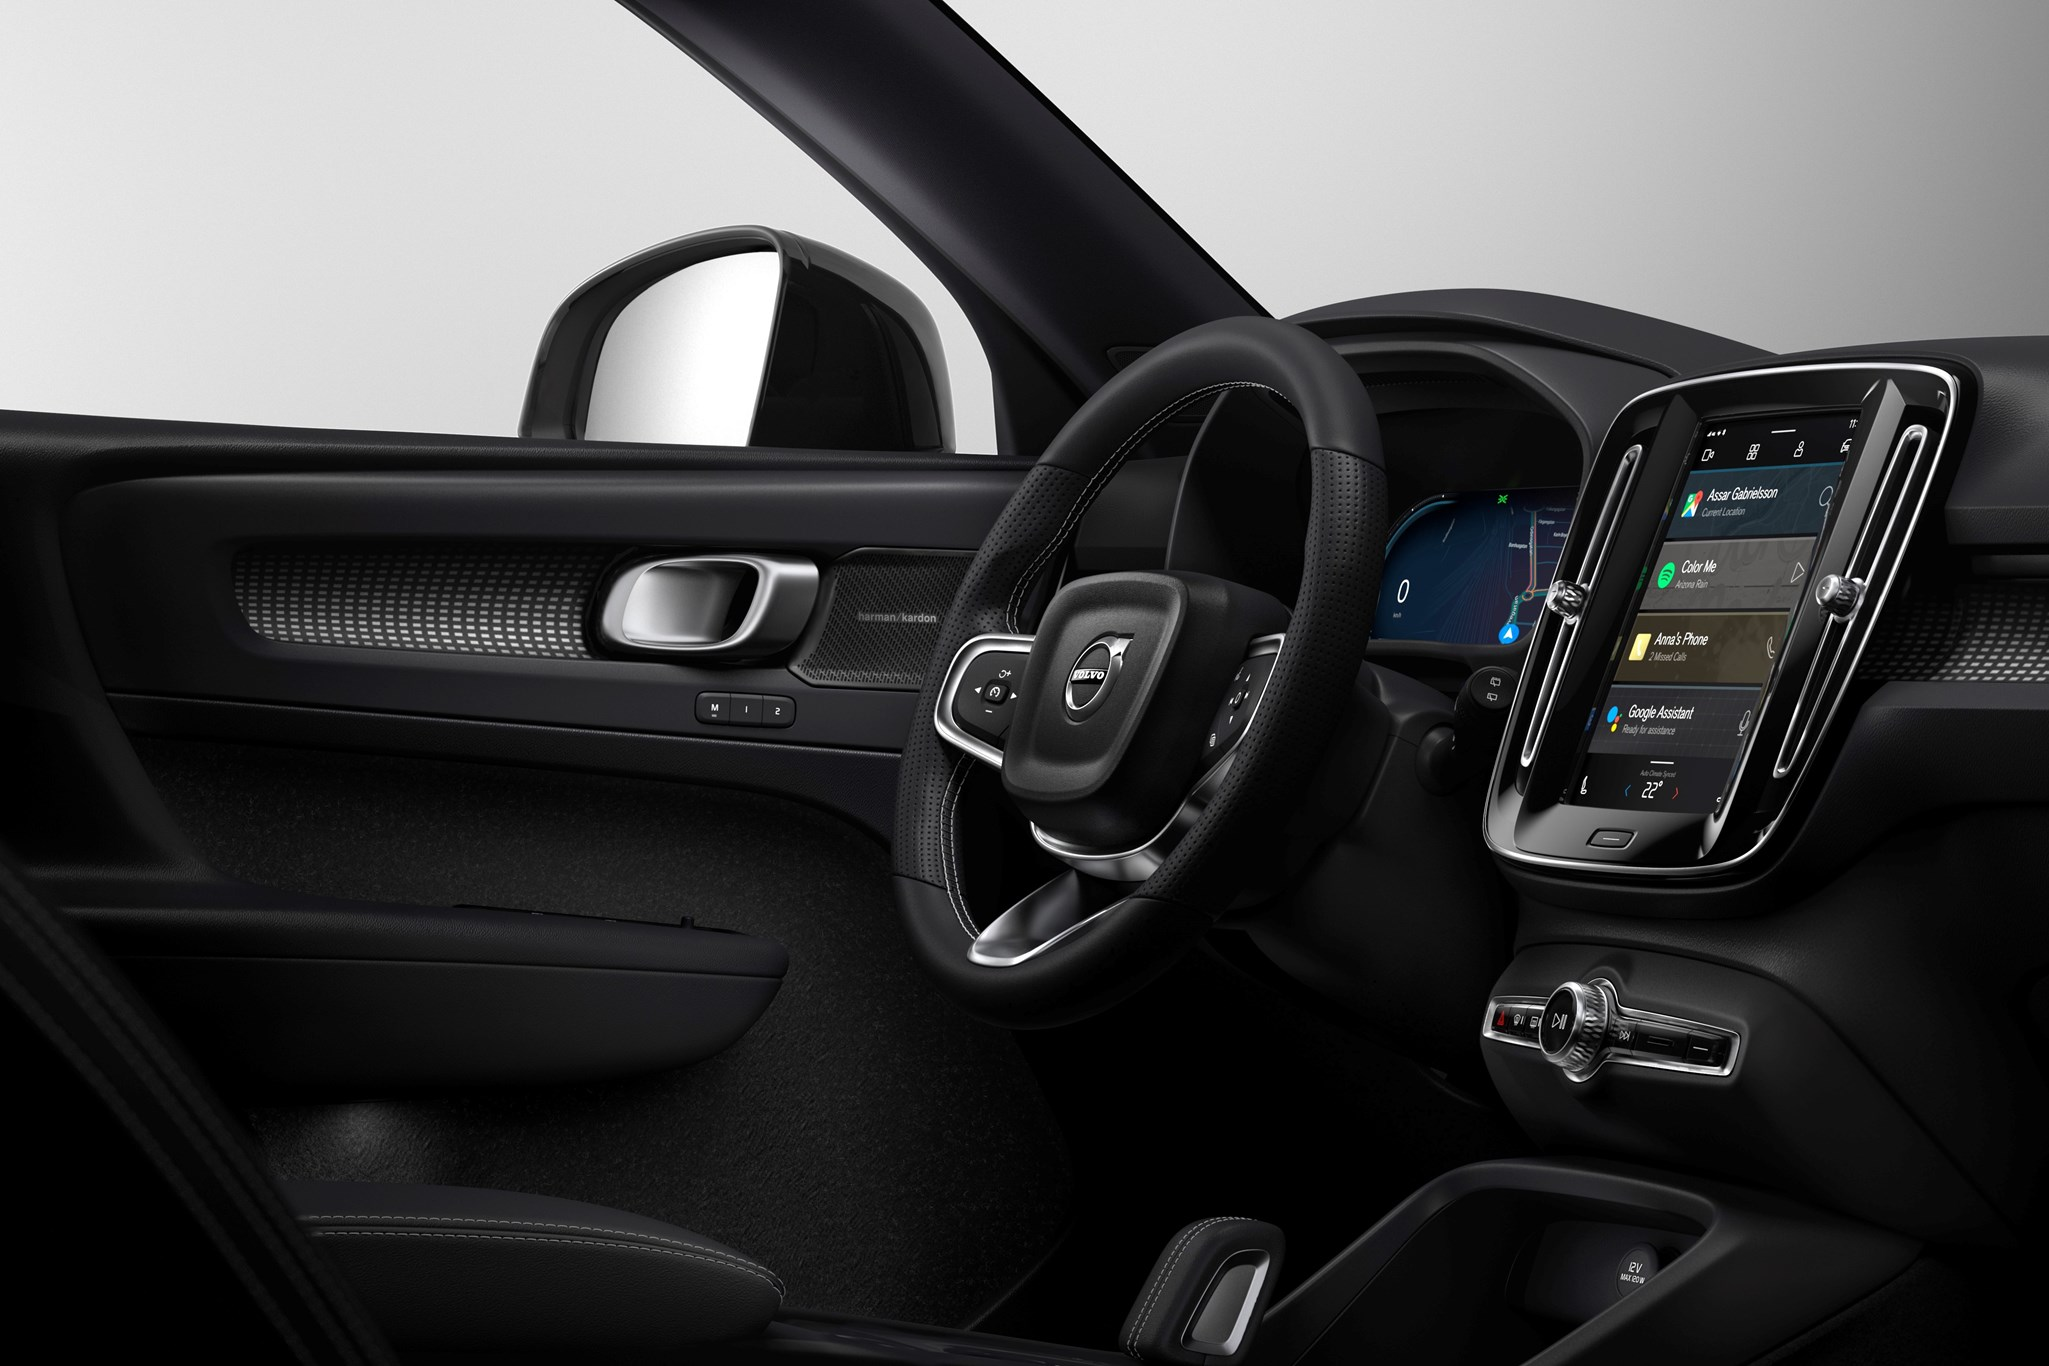 Volvo XC40 is first to get Android-powered infotainment system